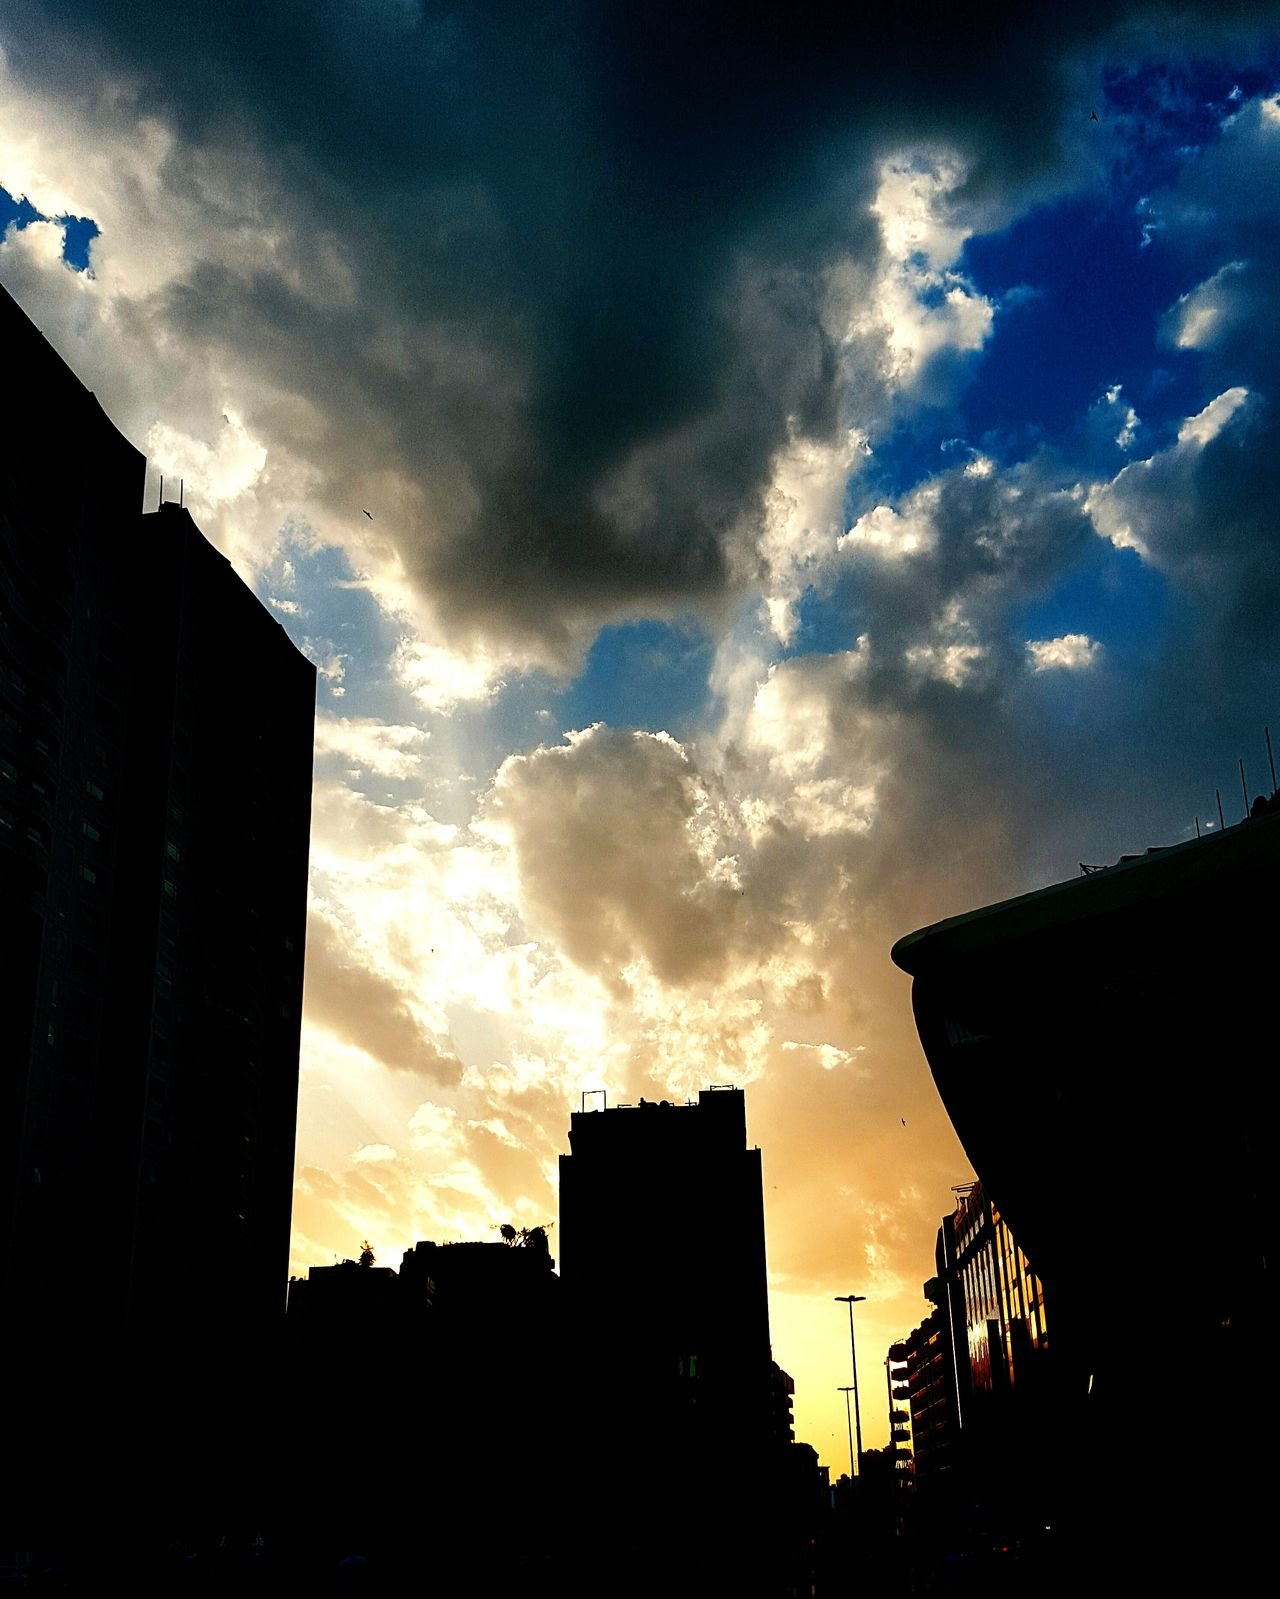 Sky Cloud - Sky Skyscraper Building Exterior No People City Sunset Low Angle View Dramatic Sky Outdoors Nature Urban Skyline Beauty In Nature Cityscape Architecture Day Silhouette PhonePhotography Weather Photography Sunlight Built Structure EyeEmNewHere